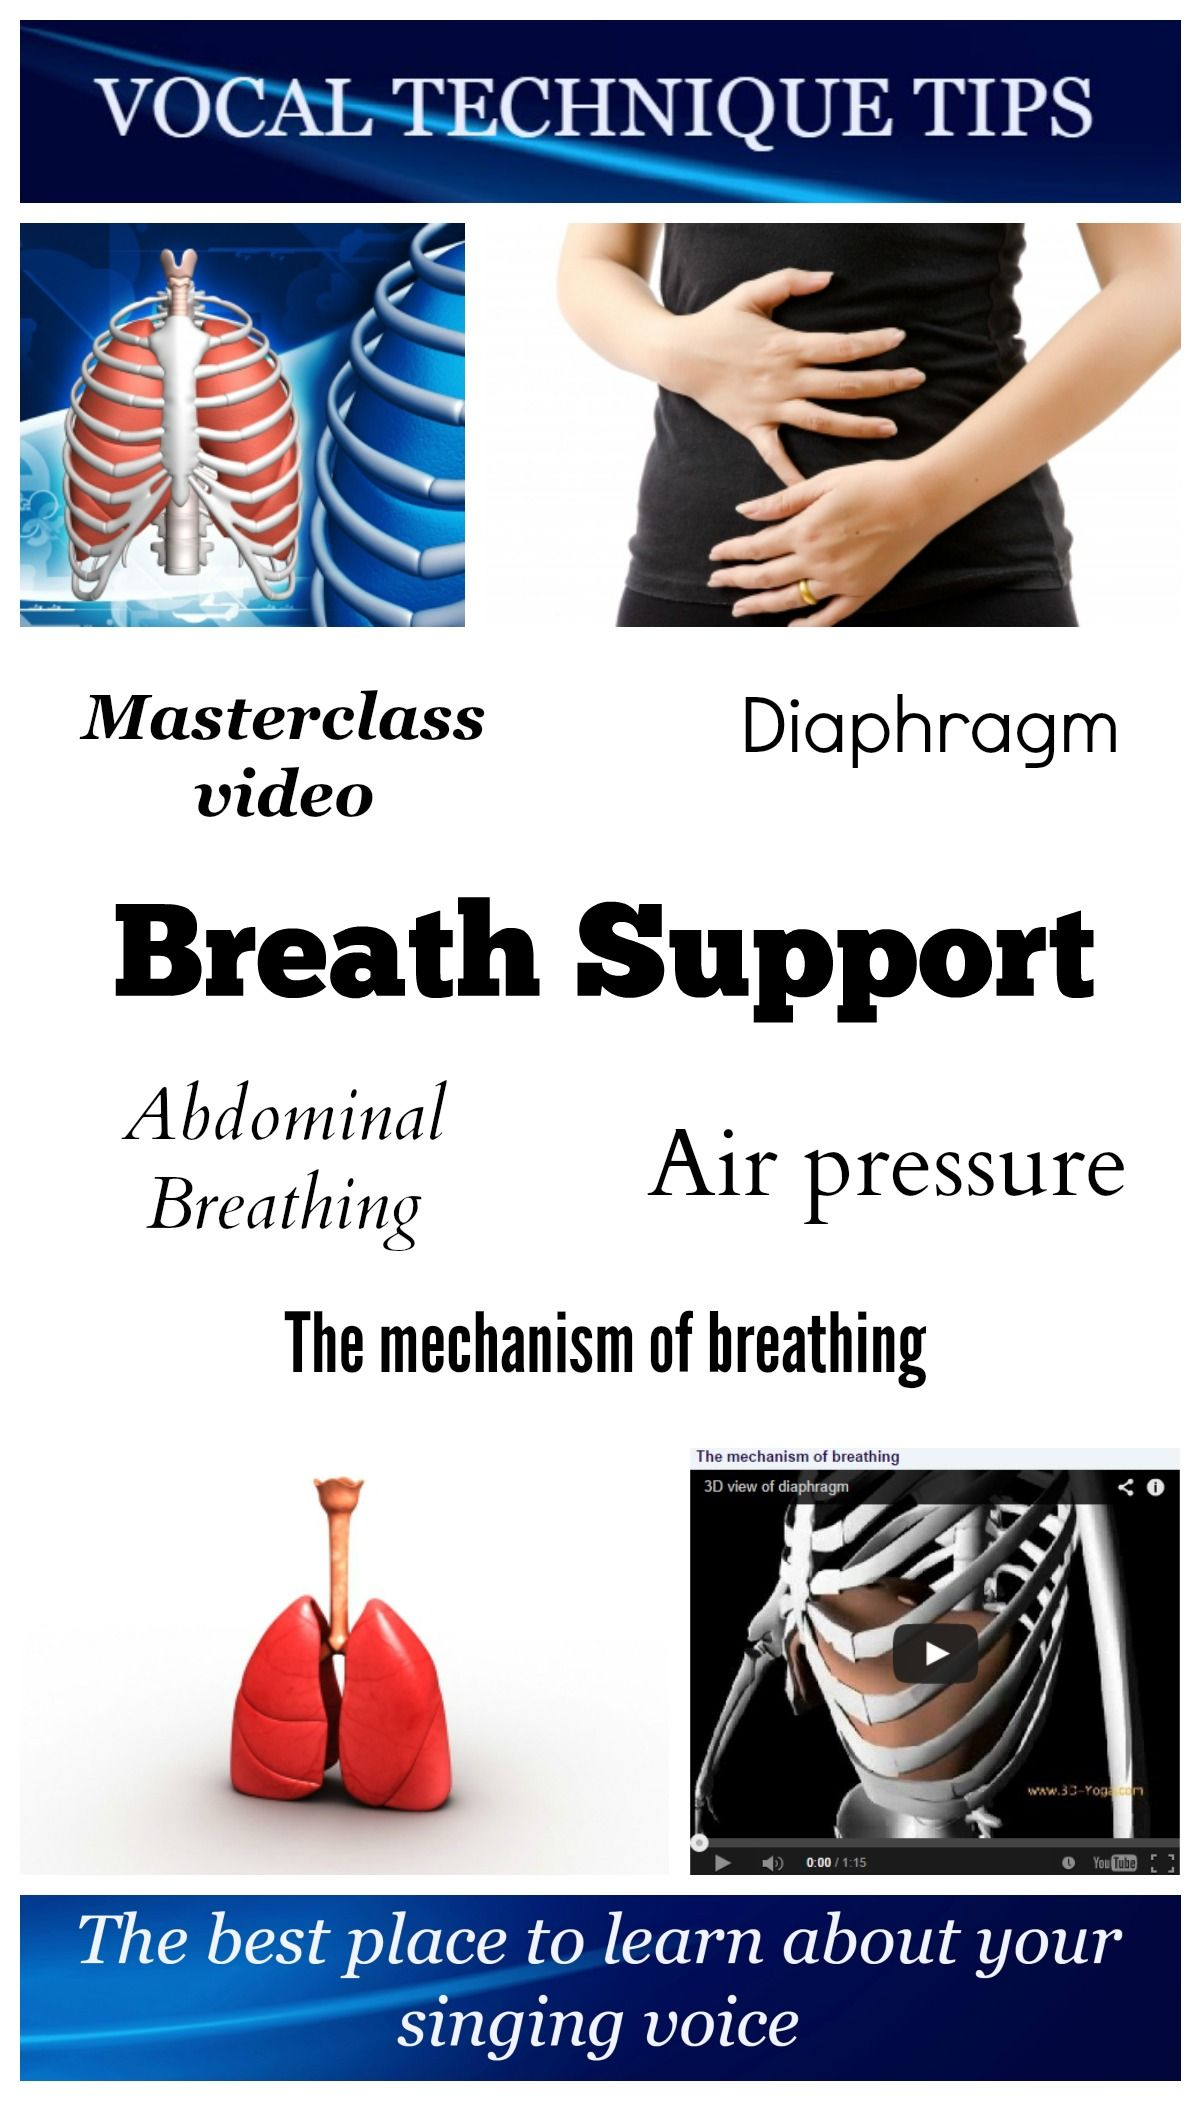 Breath Support Is About Managing The Air Pressure Below